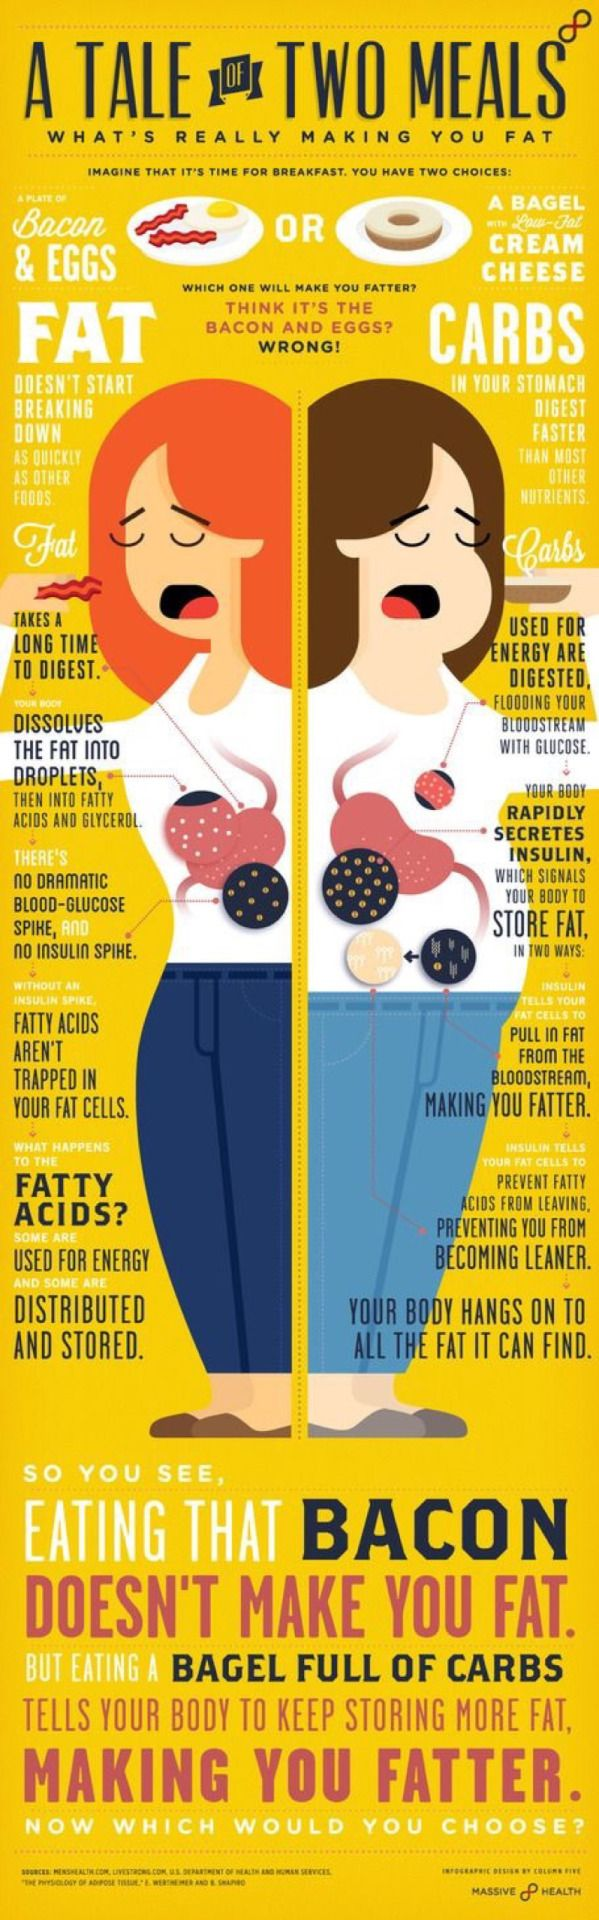 Eat all the fats! Here's a beginners guide to the ketogenic diet.   http://www.ruled.me/guide-keto-diet/